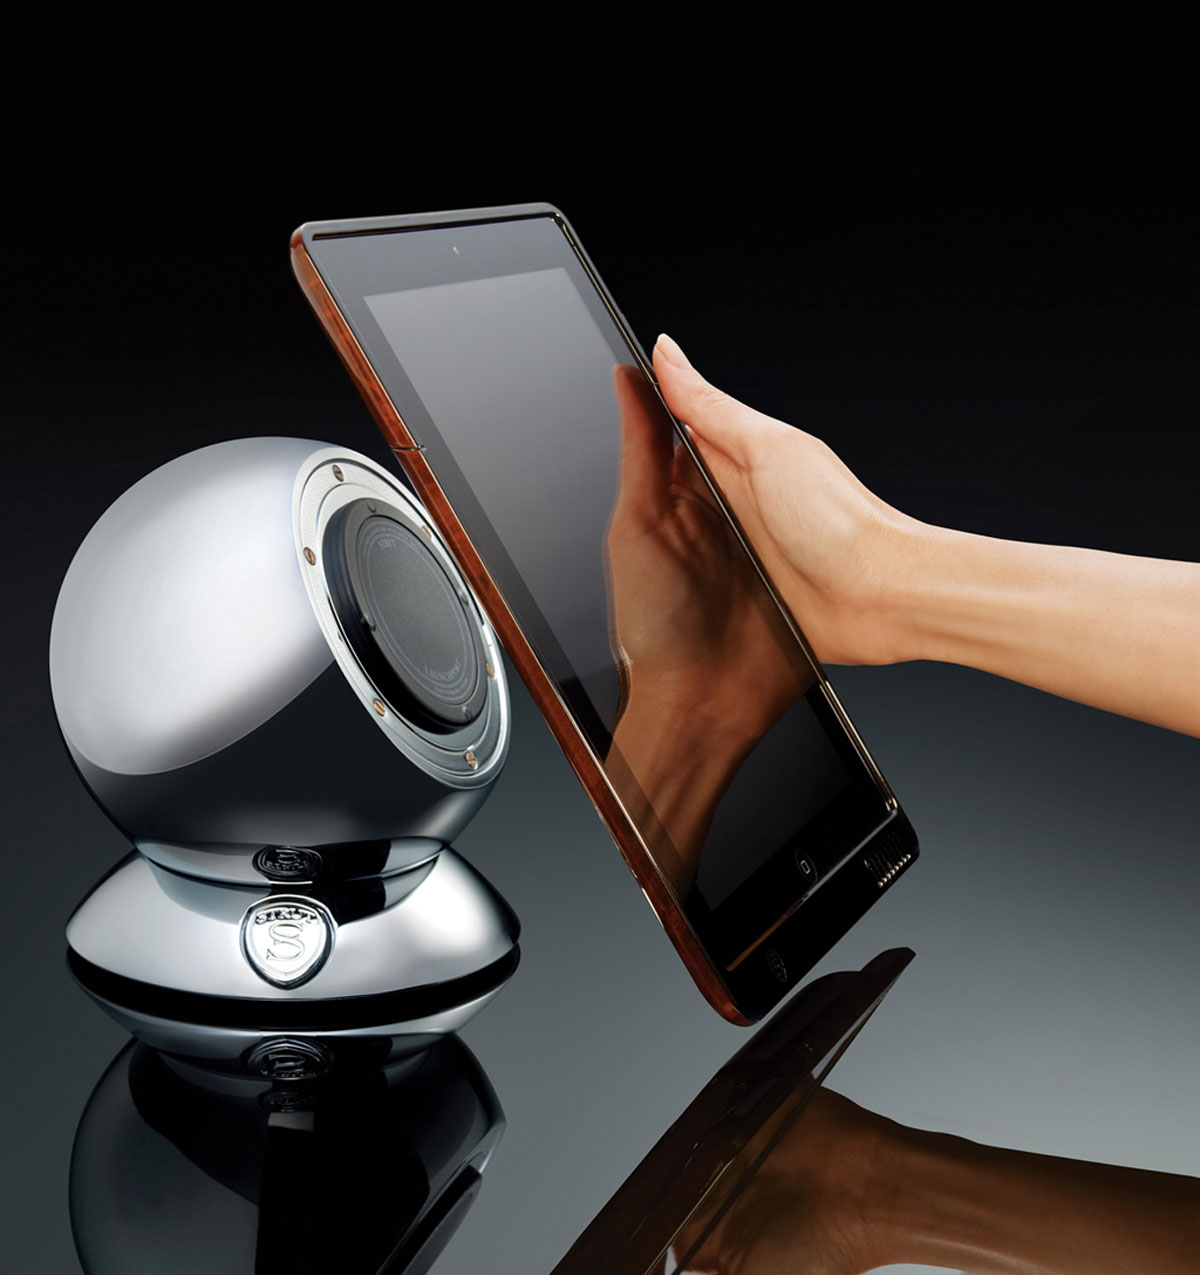 STRUT LaunchPort System – the Best of iPad Docking Stations